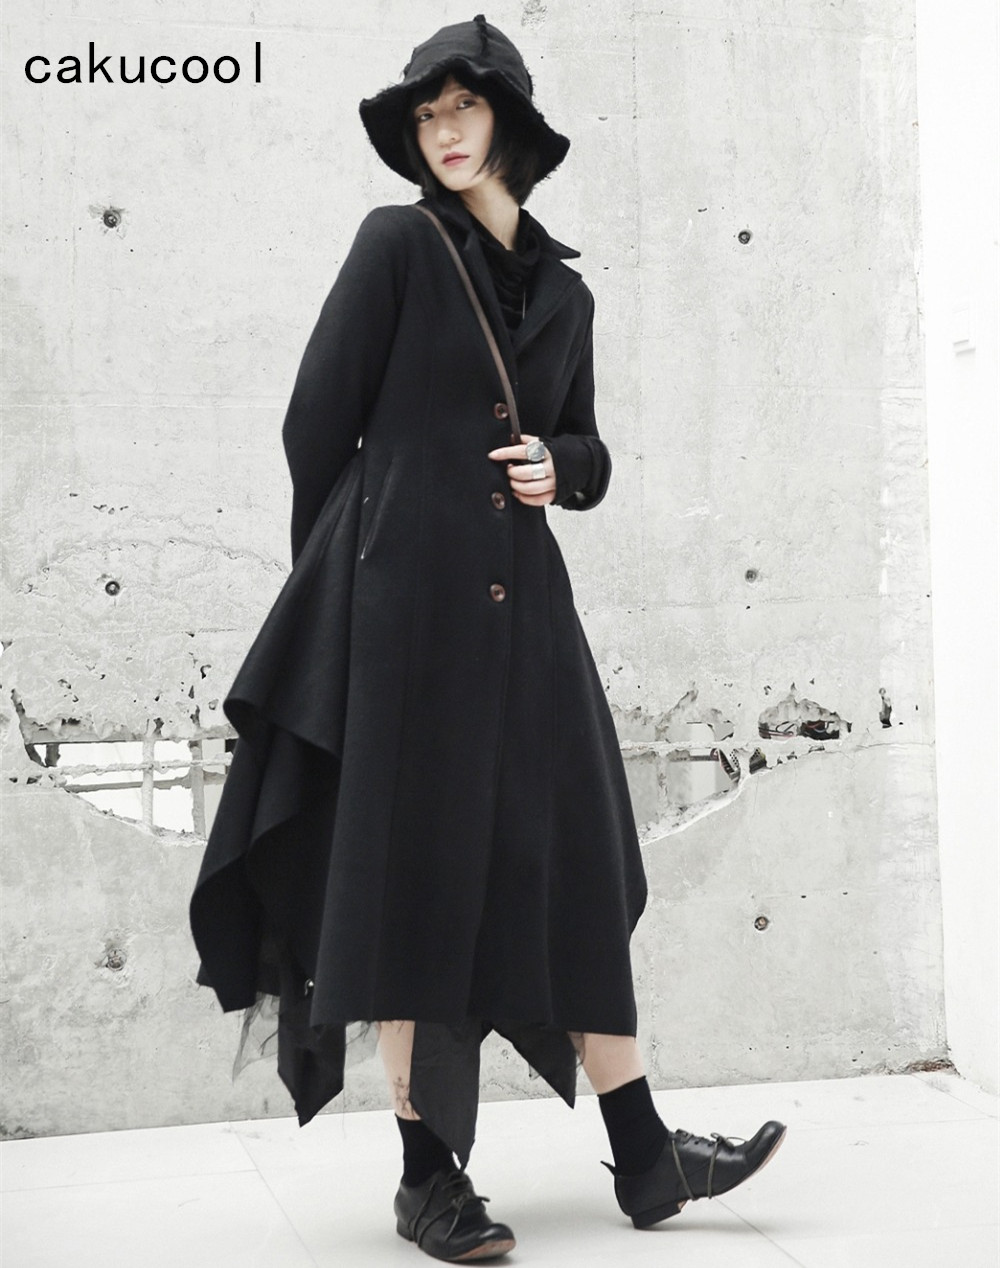 1b33d84daf8c8 US $69.77 5% OFF|Cakucool New Winter Coat Women Slim Asymmetric Design  Black Skirt Outwear Novelty Design Gothic Wool Blends Femme Women  Clothing-in ...